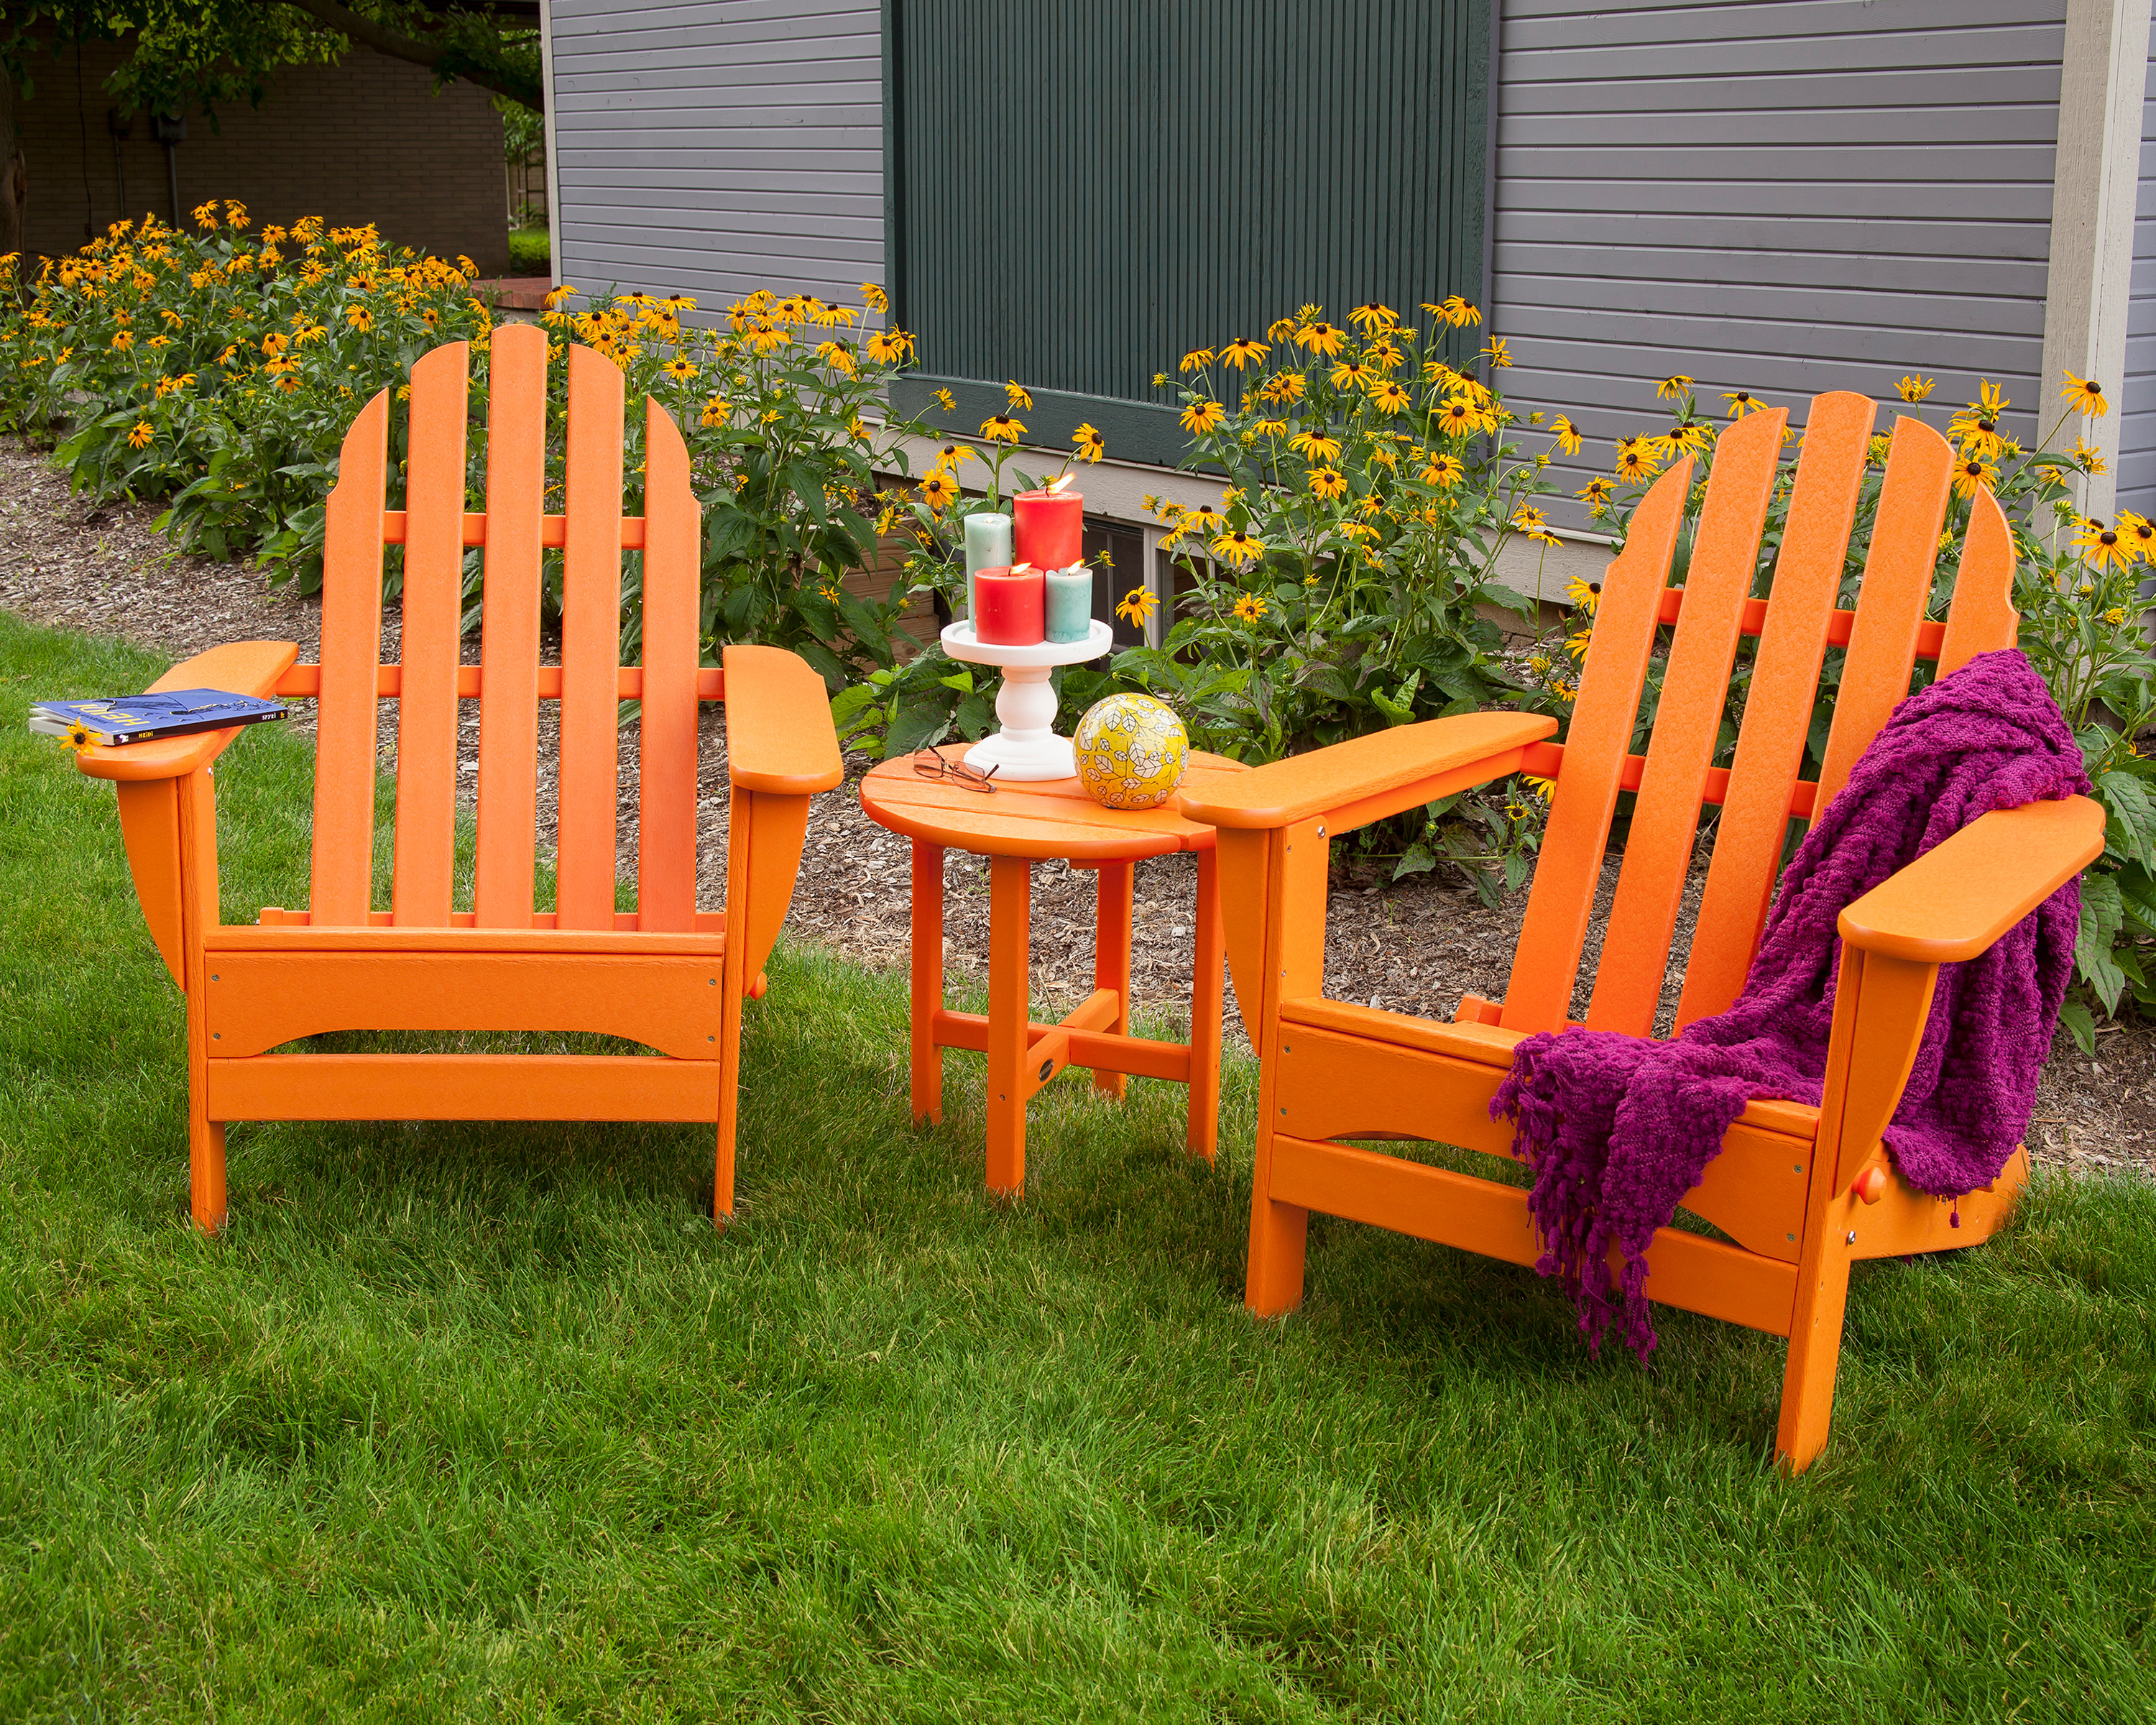 Bright Idea Shops Chairs plastic lumber products